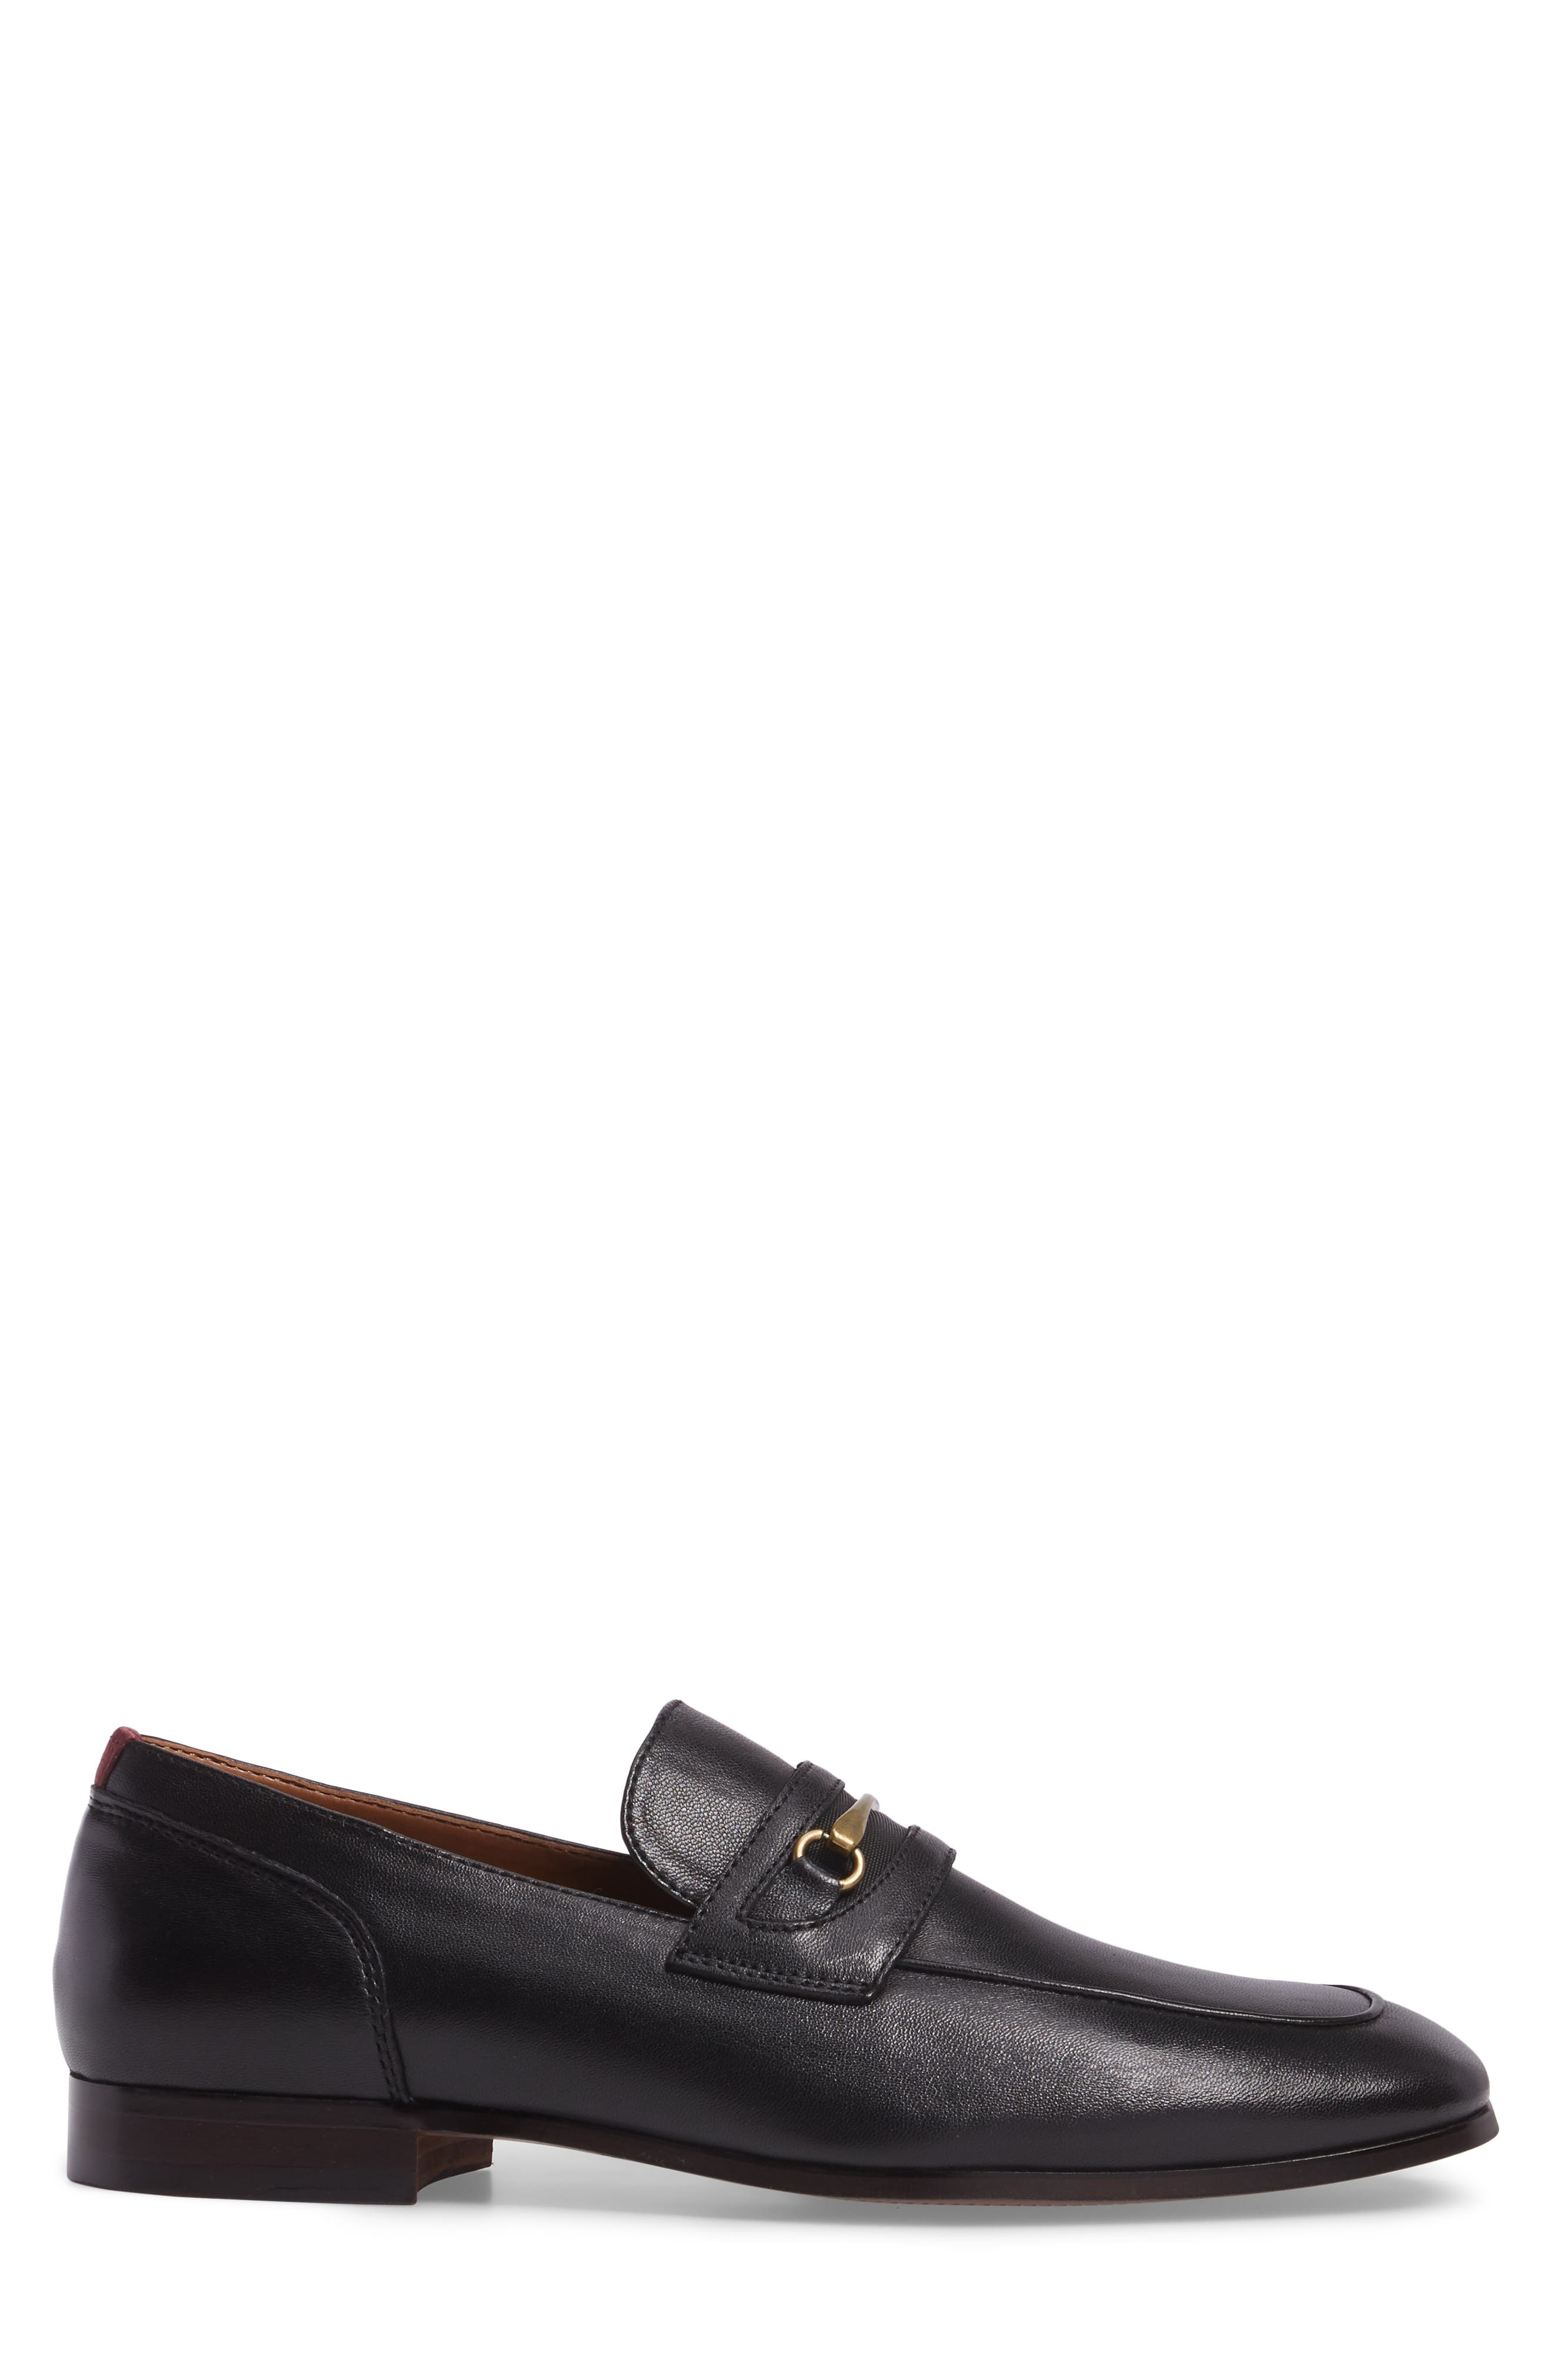 Alternate Image 3  - ALDO Murat Bit Loafer (Men)